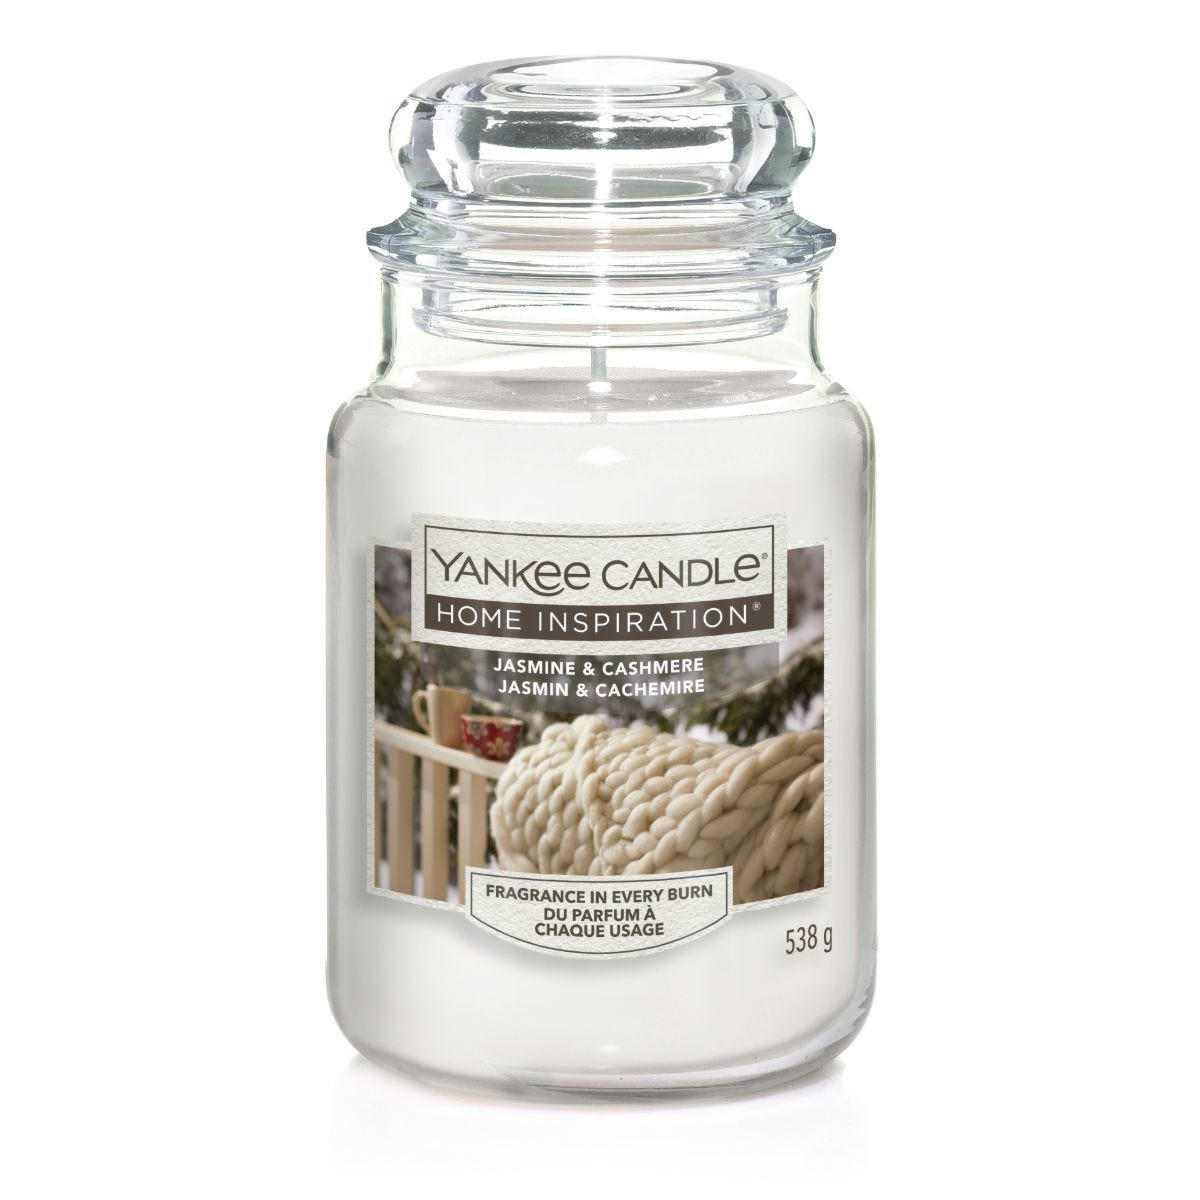 Yankee Candle Home Inspiration Large Jar Candle - Jasmine & Cashmere